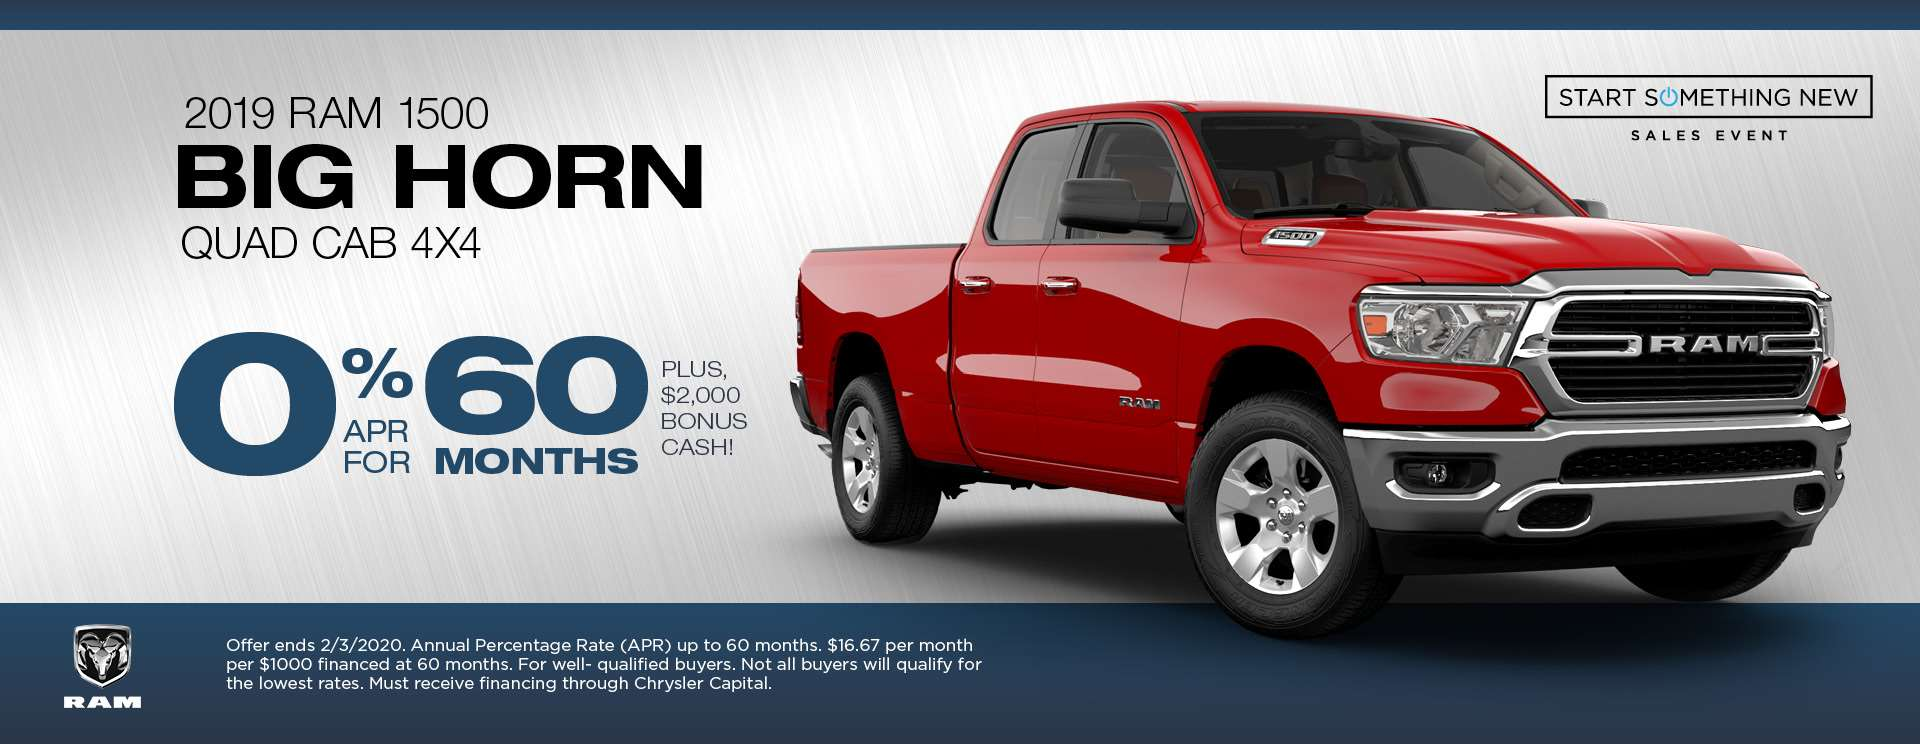 Ram 1500 Big Horn APR Offer